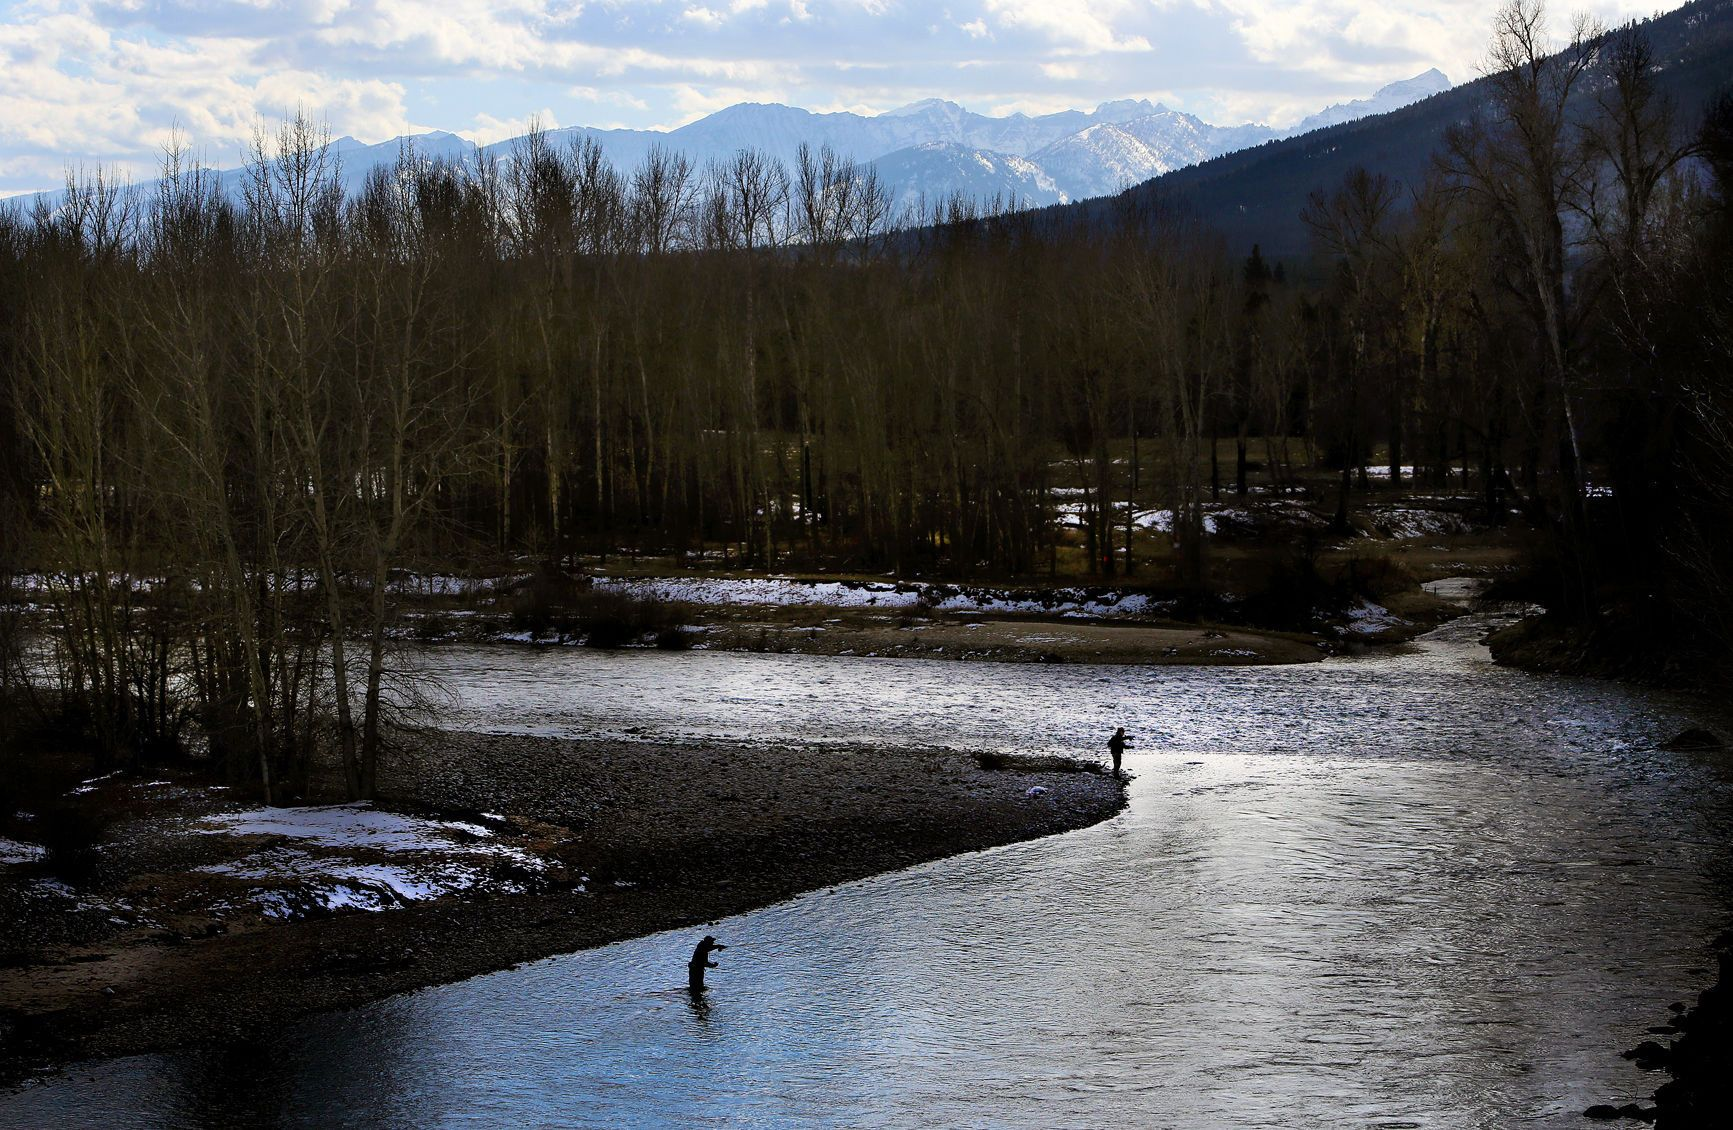 Fishing guides gather to talk about threats posed by climate change